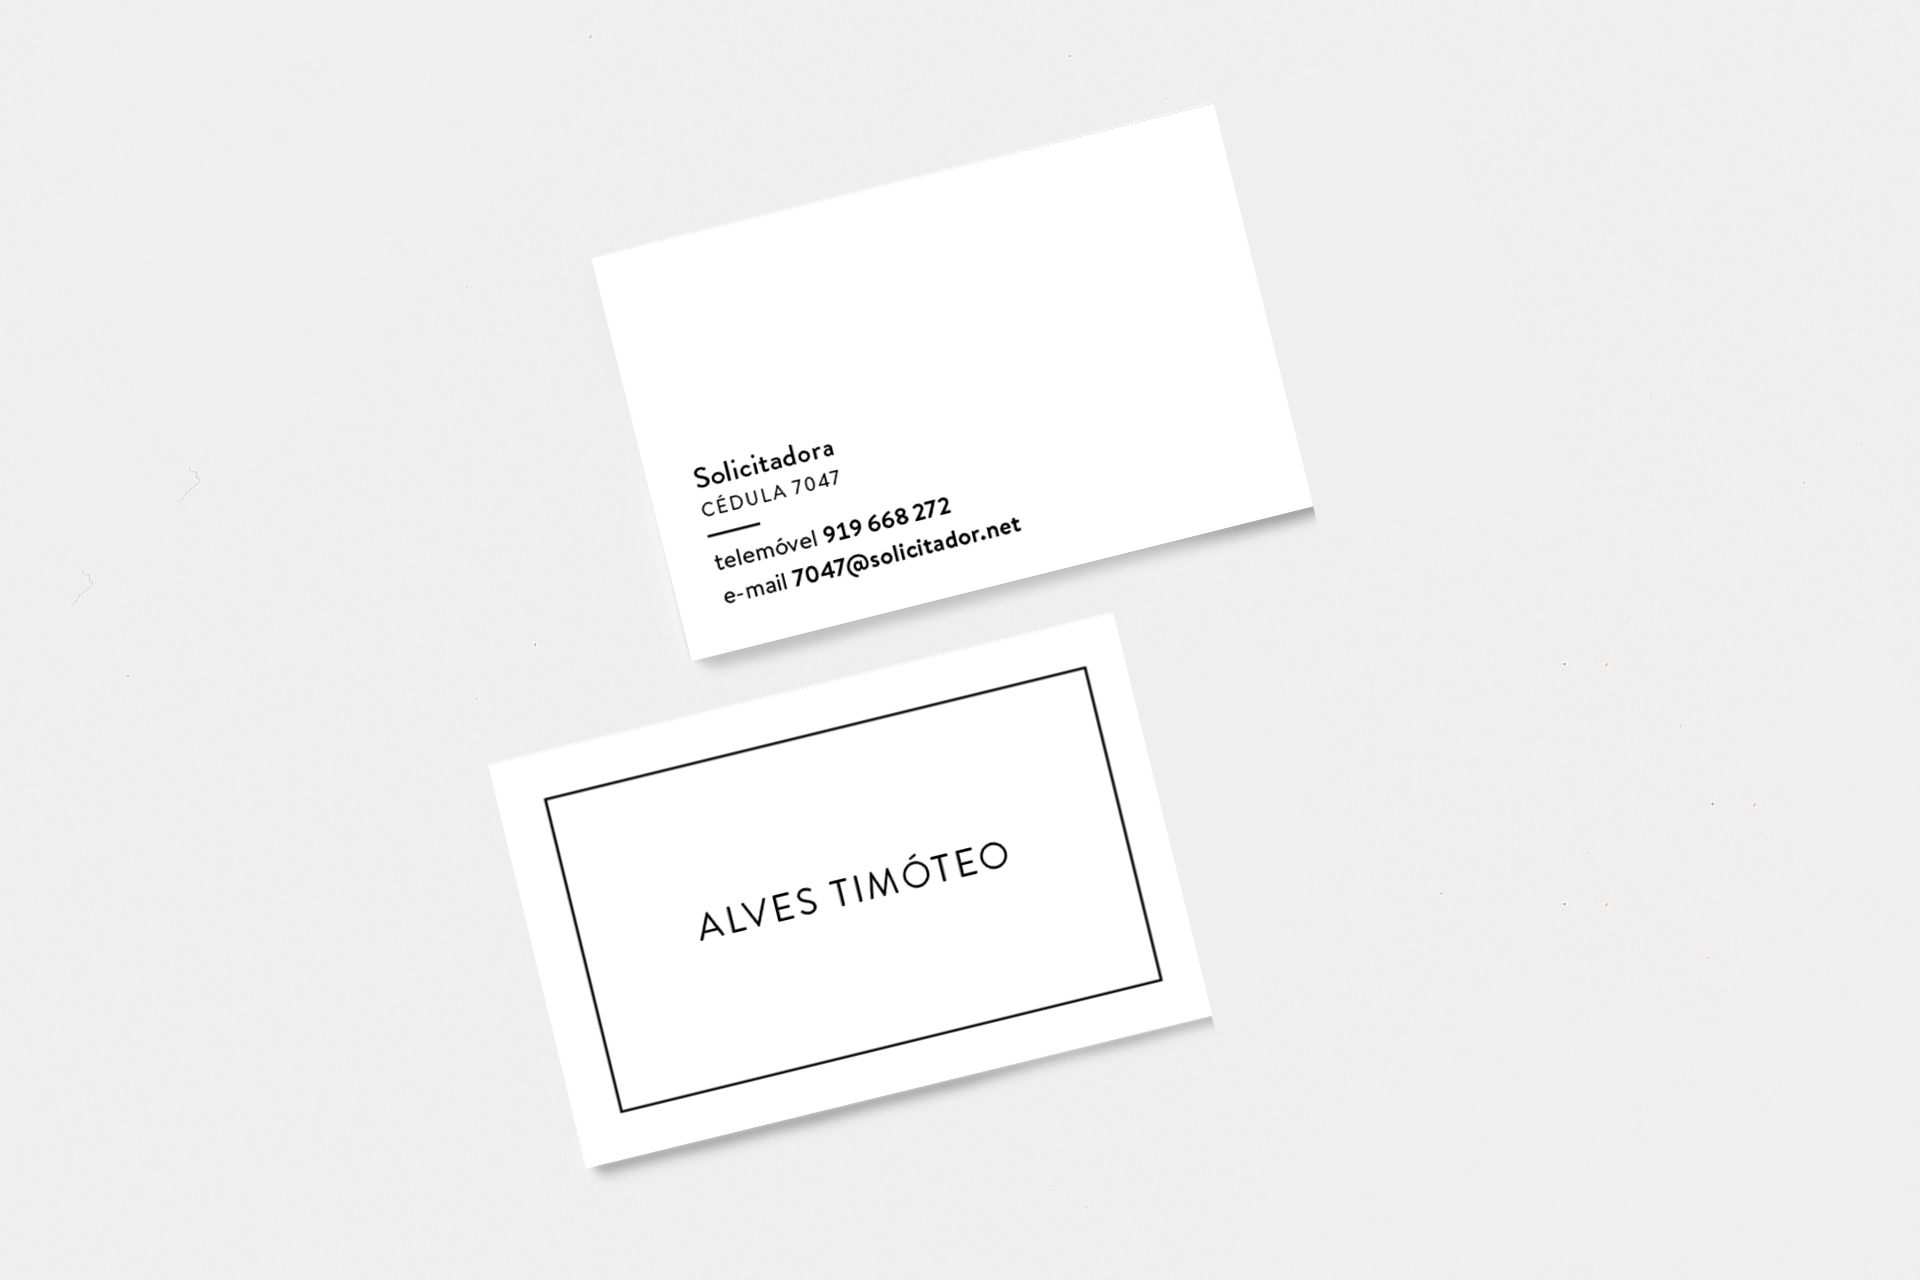 Business cards for solicitor/adviser Rute Alves Timóteo.